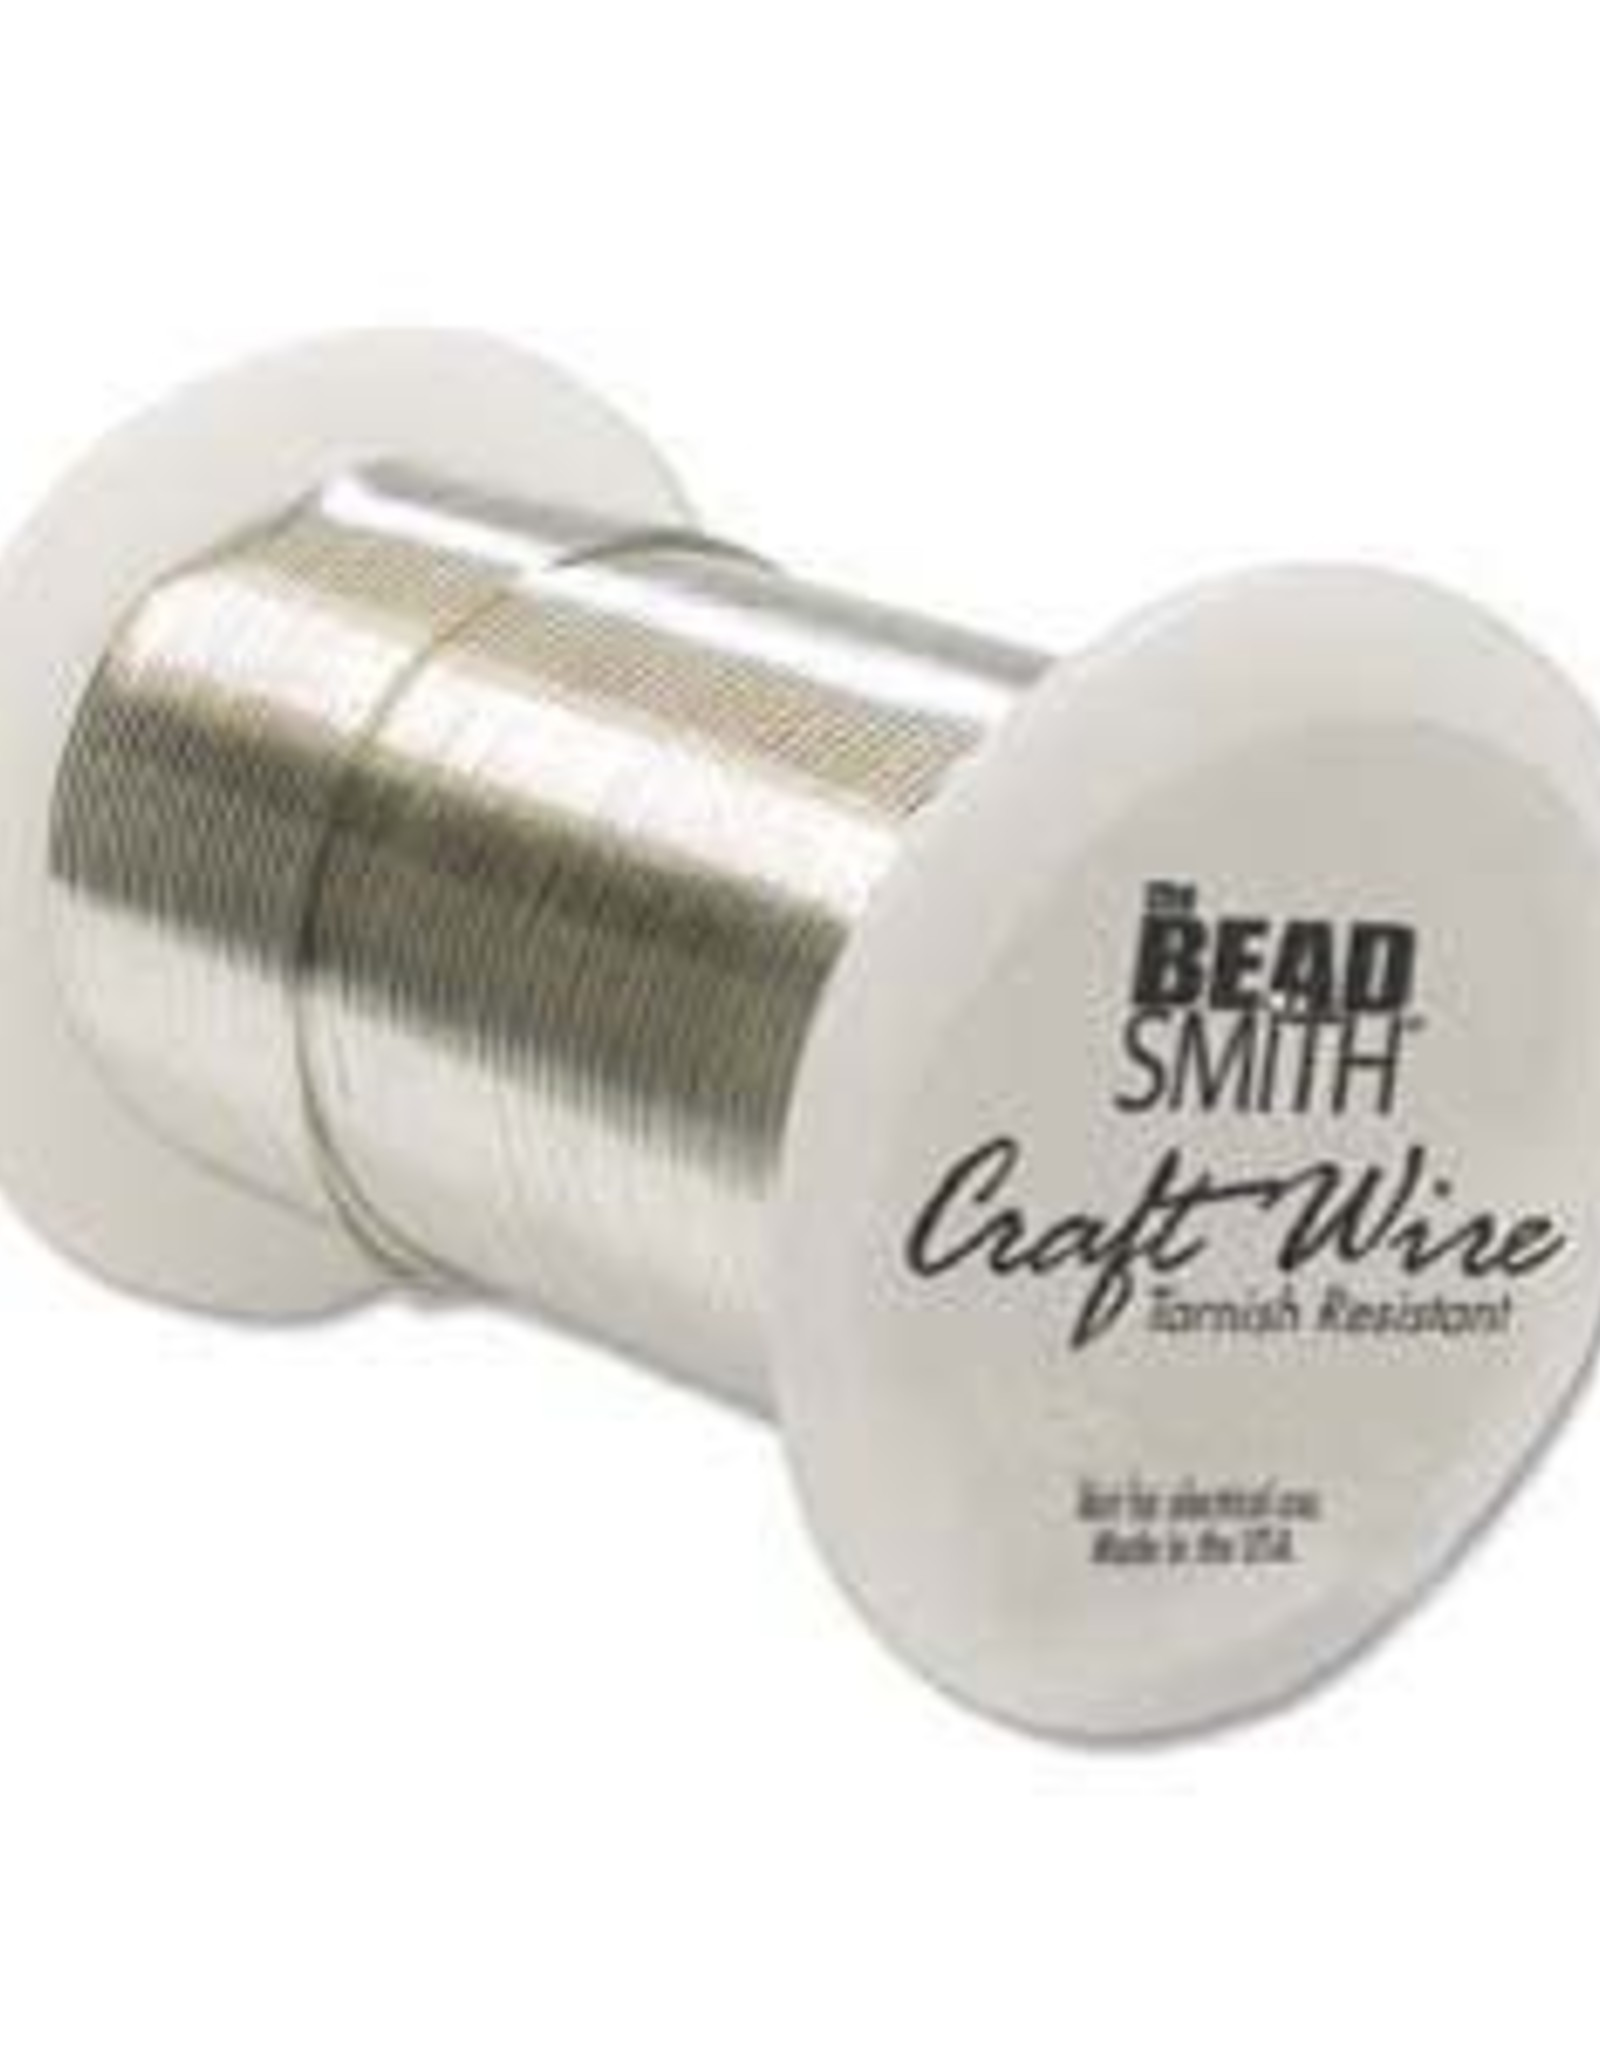 Craft Wire 16ga. Silver Plate Size 8yds